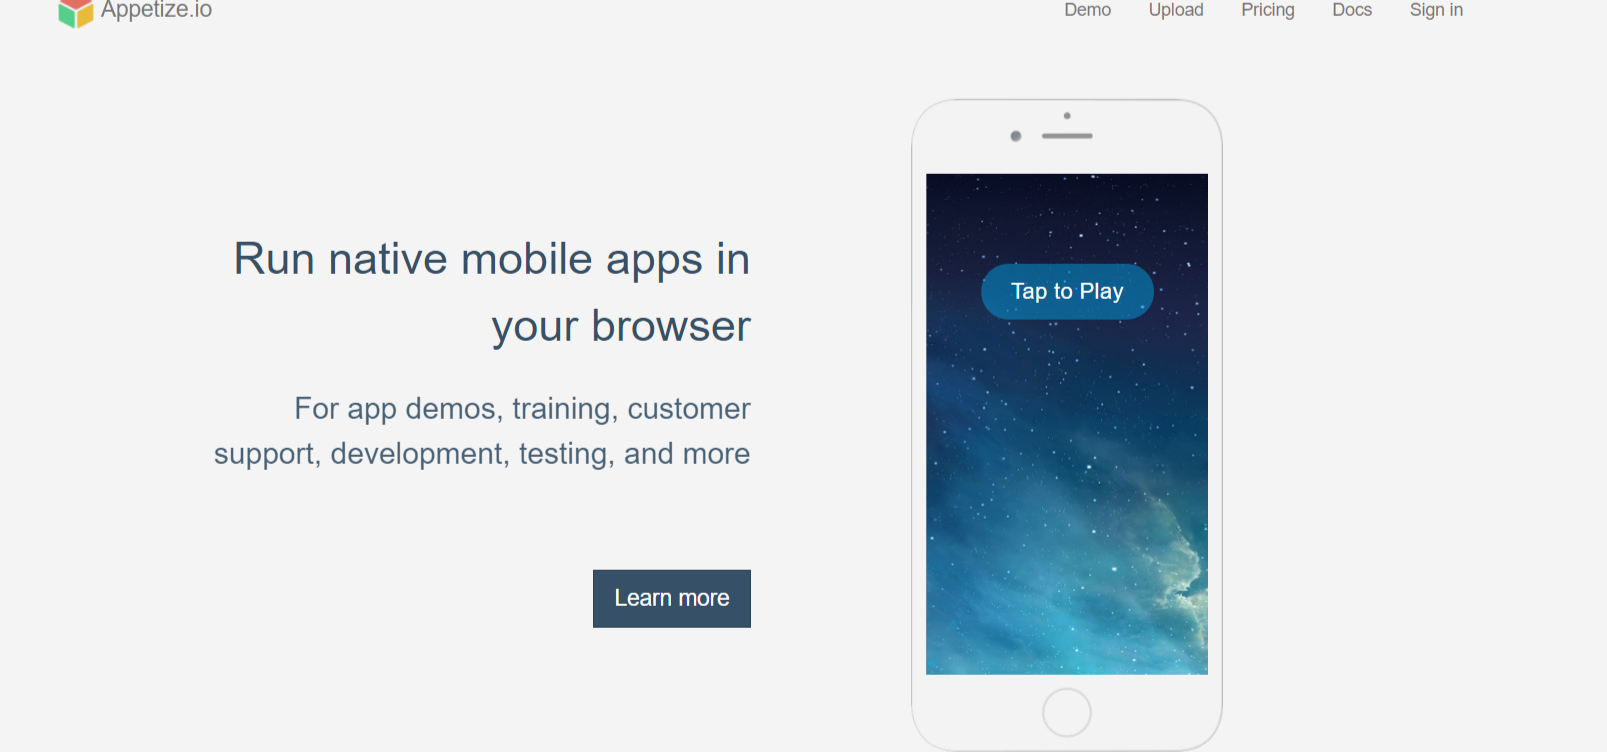 Appetize io Run native mobile apps in your browser- iOS Emulators